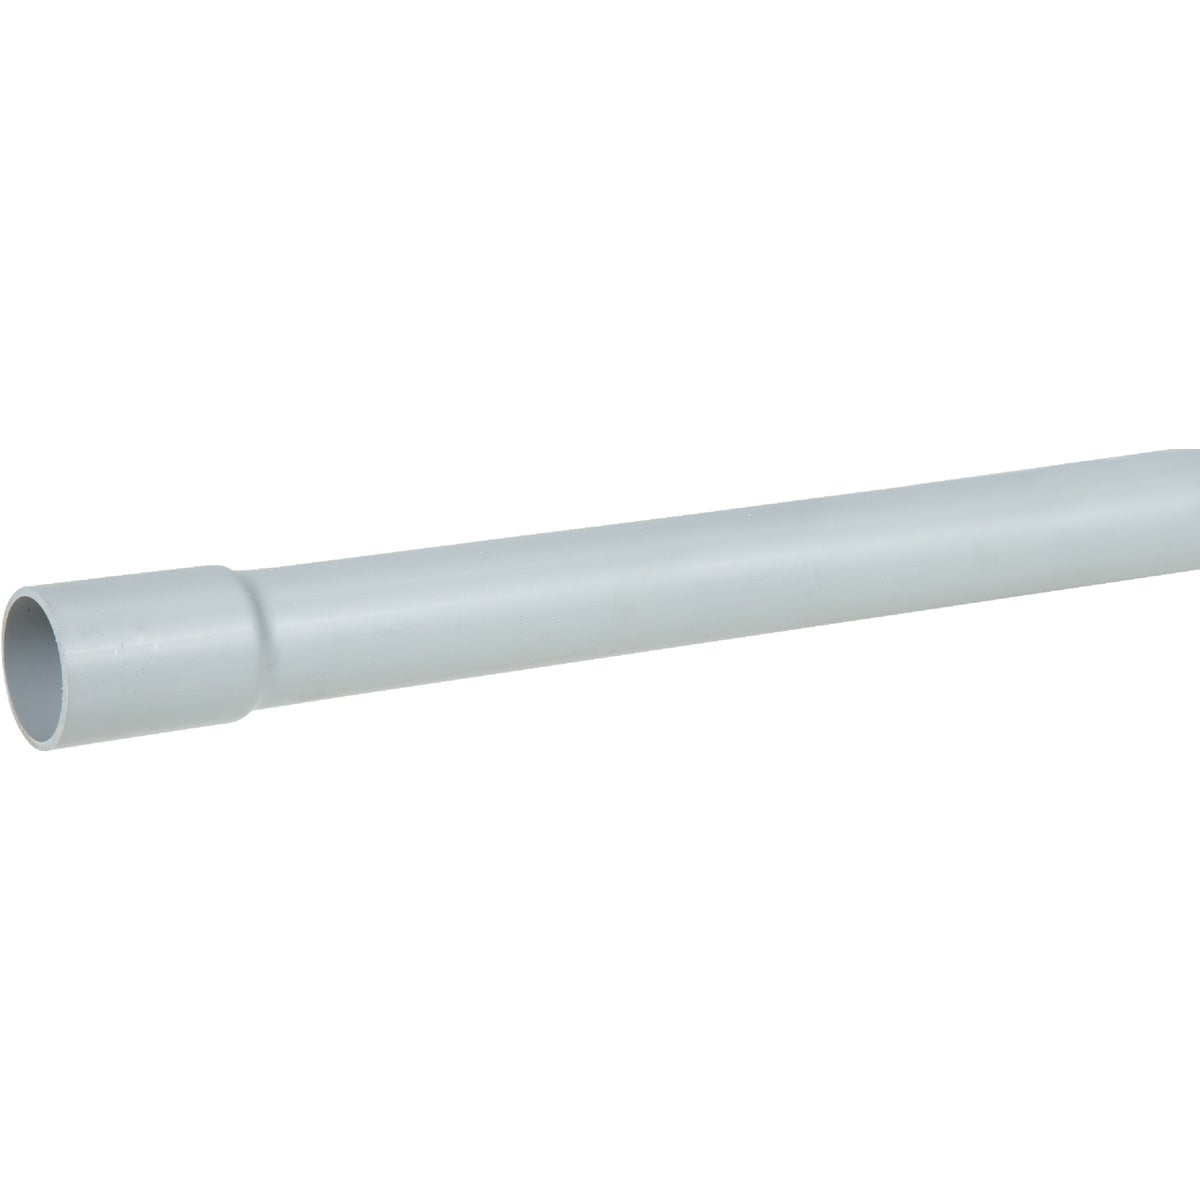 "1"" SCH40 10' CONDUIT - 49008-010 by Prime Conduit"